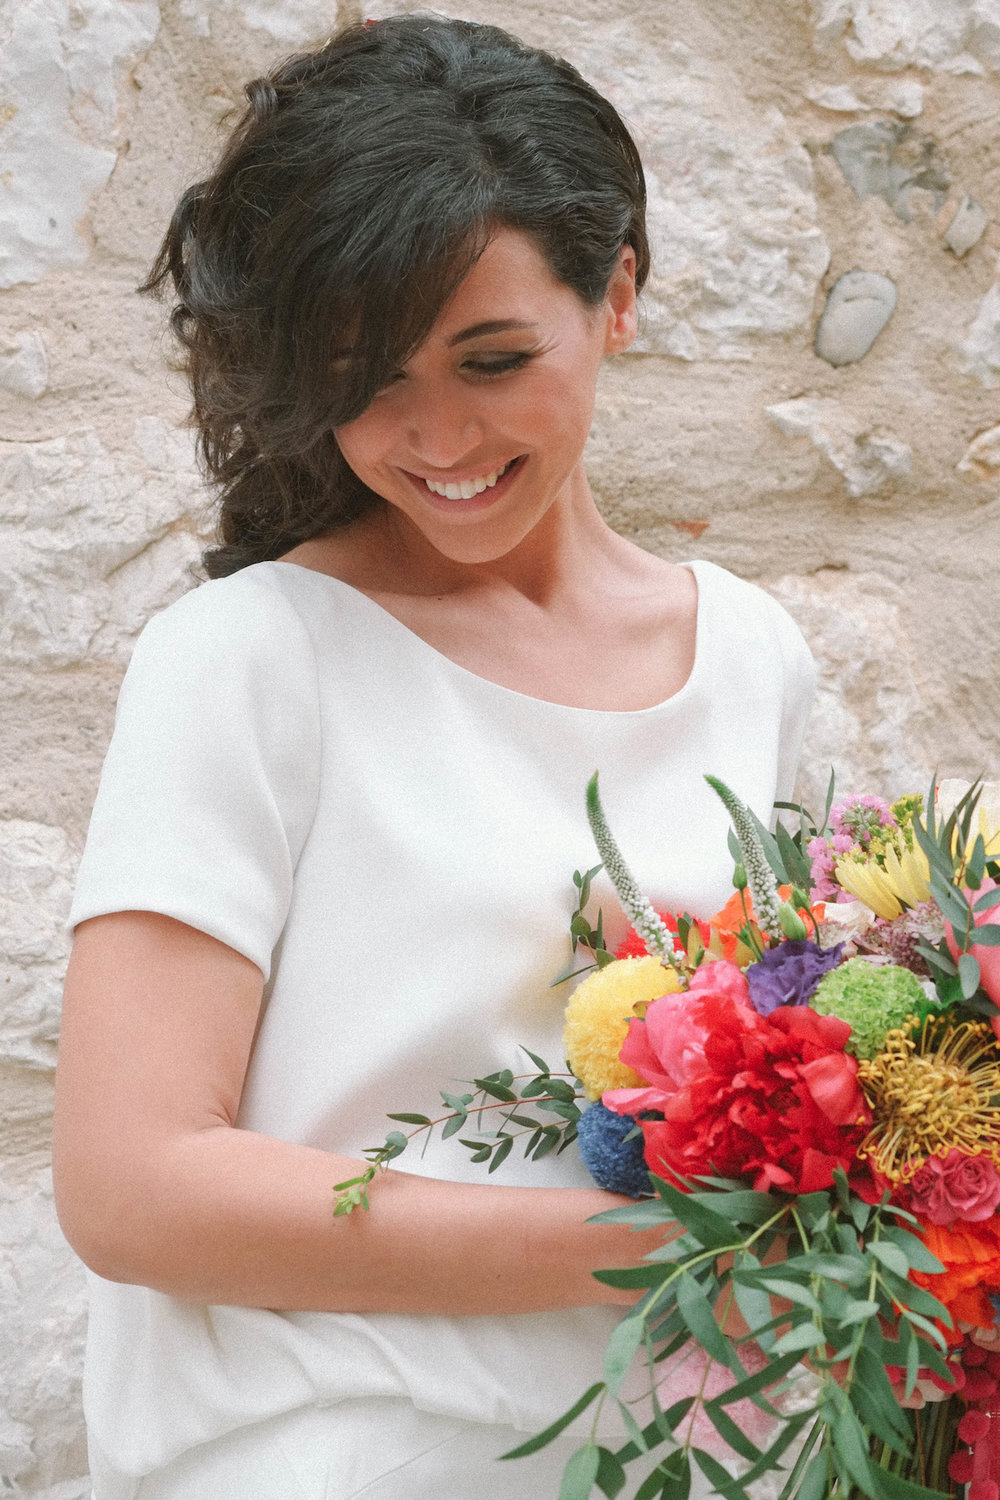 elopement-colorful-©-saya-photography-wedding-photographer-photographe-mariage-saint-paul-vence-rock-my-love-studio-ohlala-french-riviera-bride-bouquet-bridal